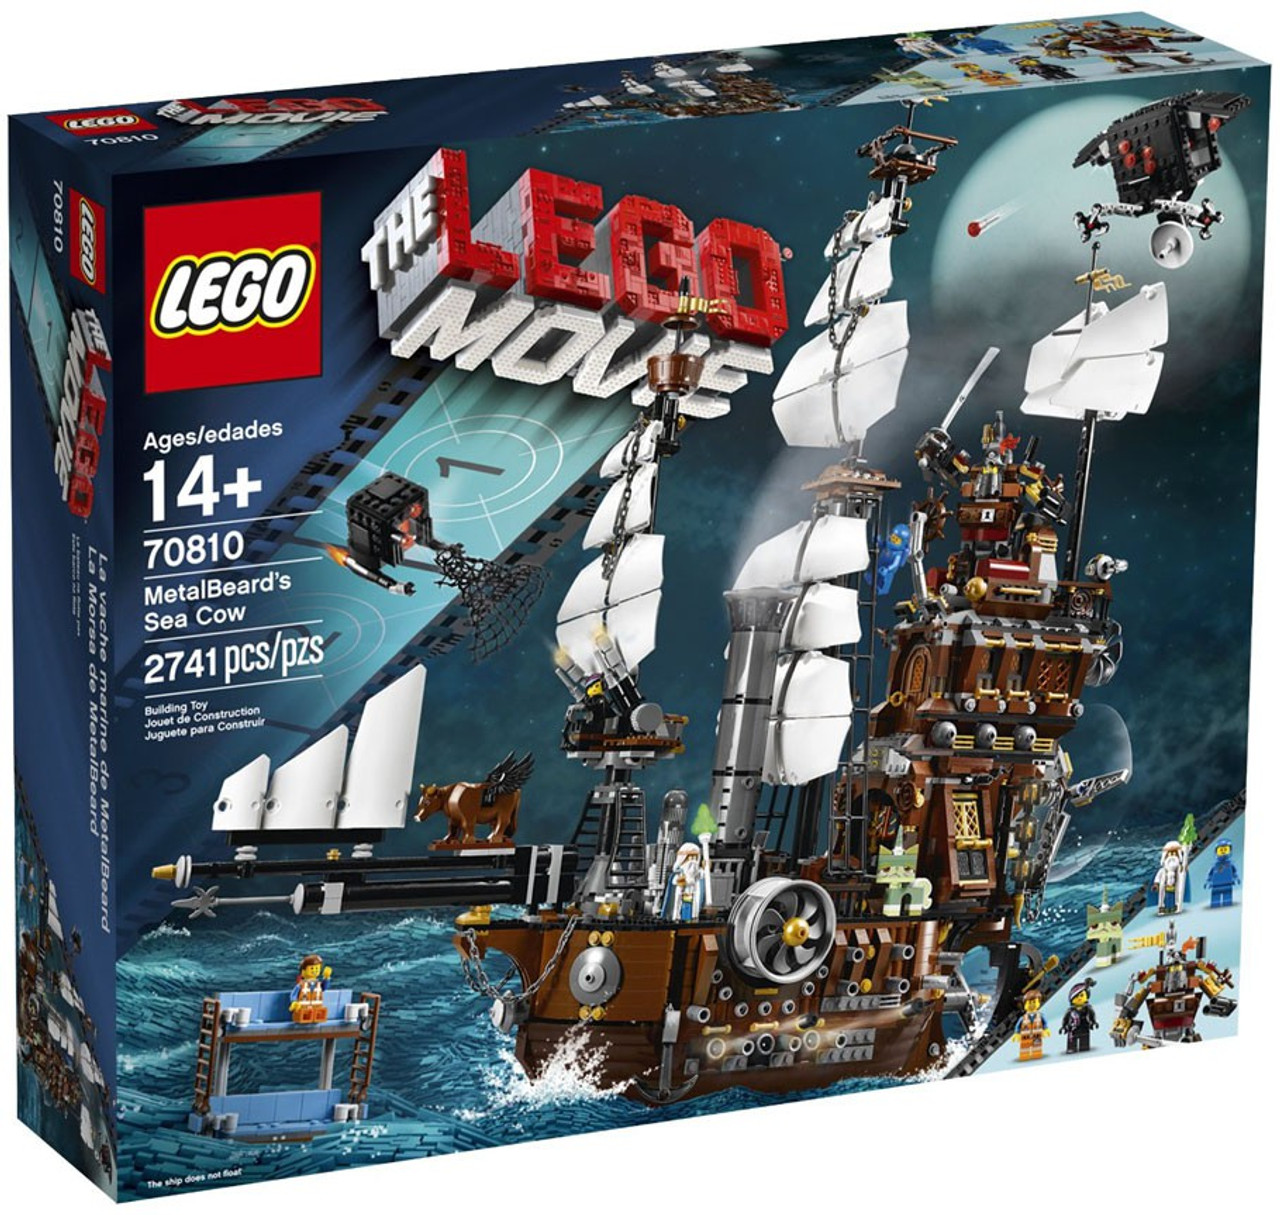 The LEGO Movie MetalBeard's Sea Cow Set #70810